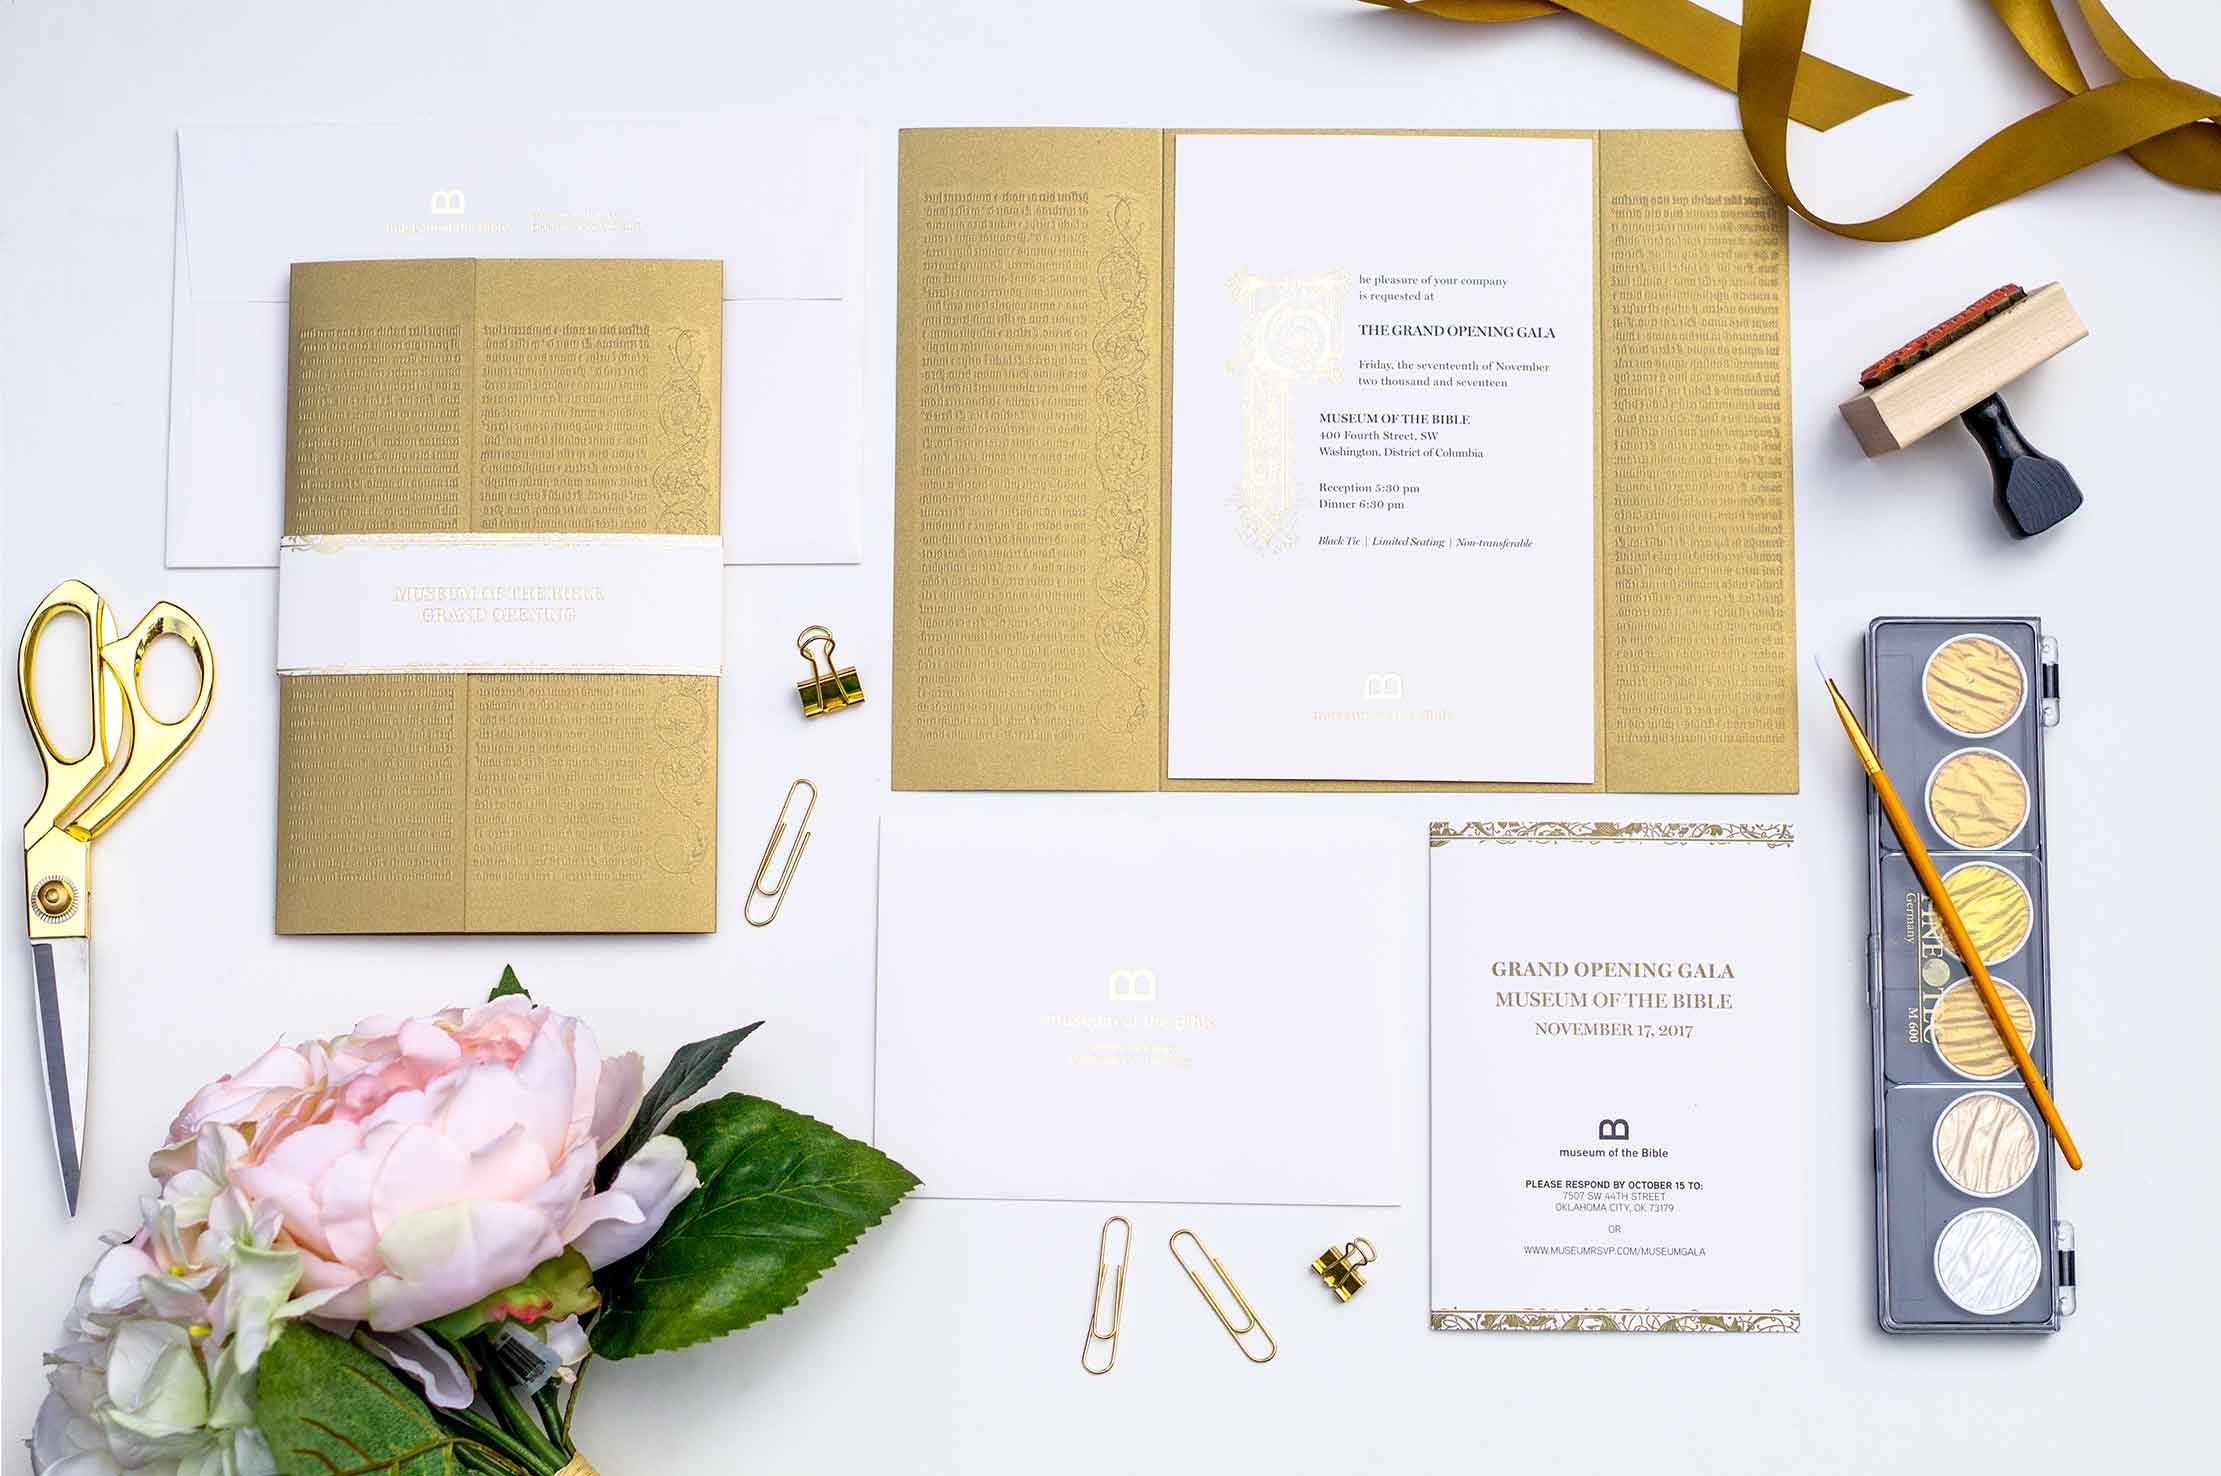 luxury invitations gala invitation event branding annapolis, md washington, dc graphic design